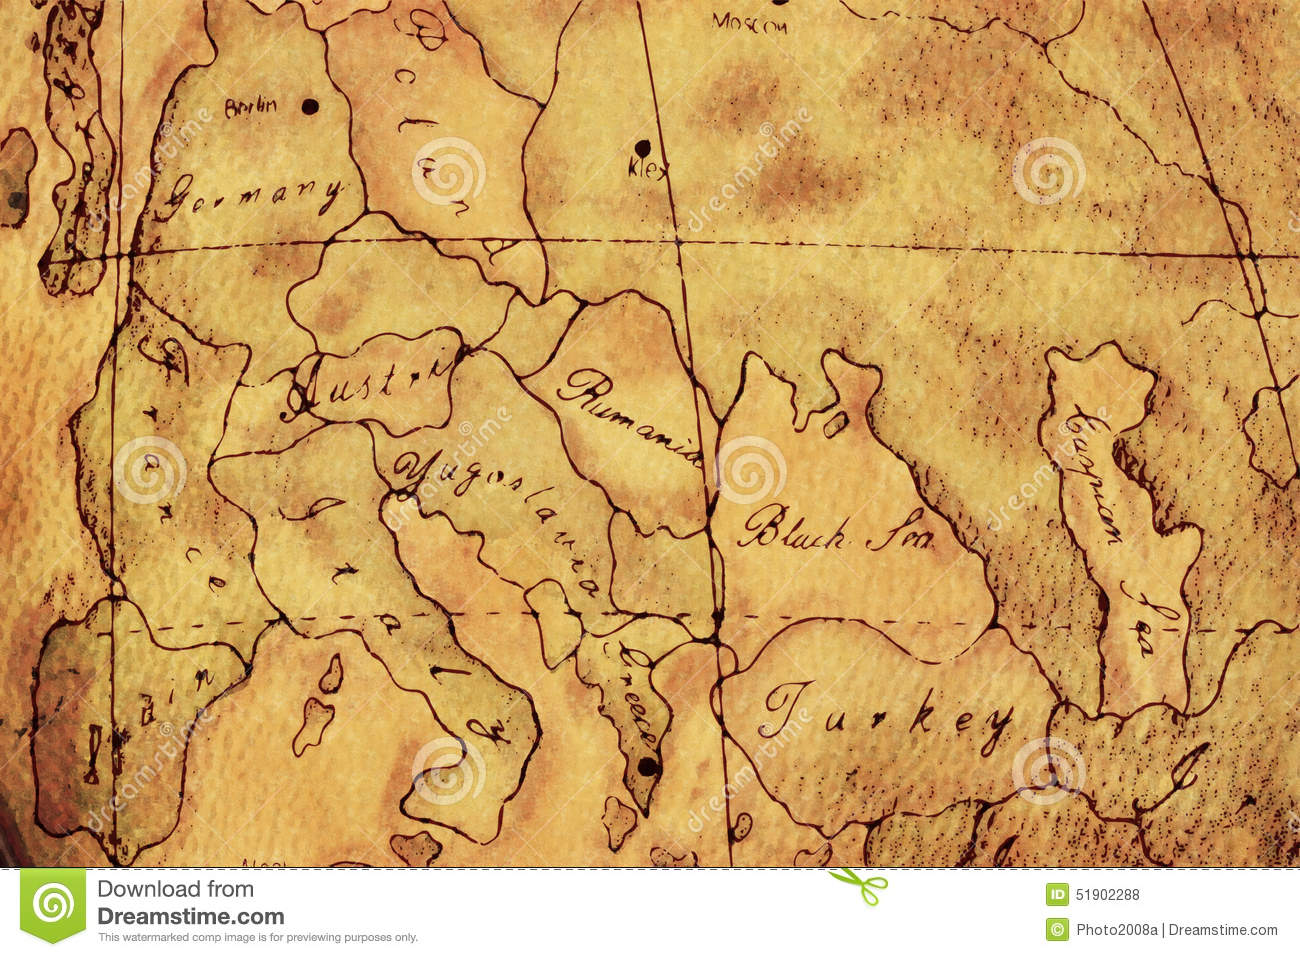 Old world europe map background stock illustration illustration of old world europe map background stock illustration illustration of europe artistic 51902288 gumiabroncs Choice Image